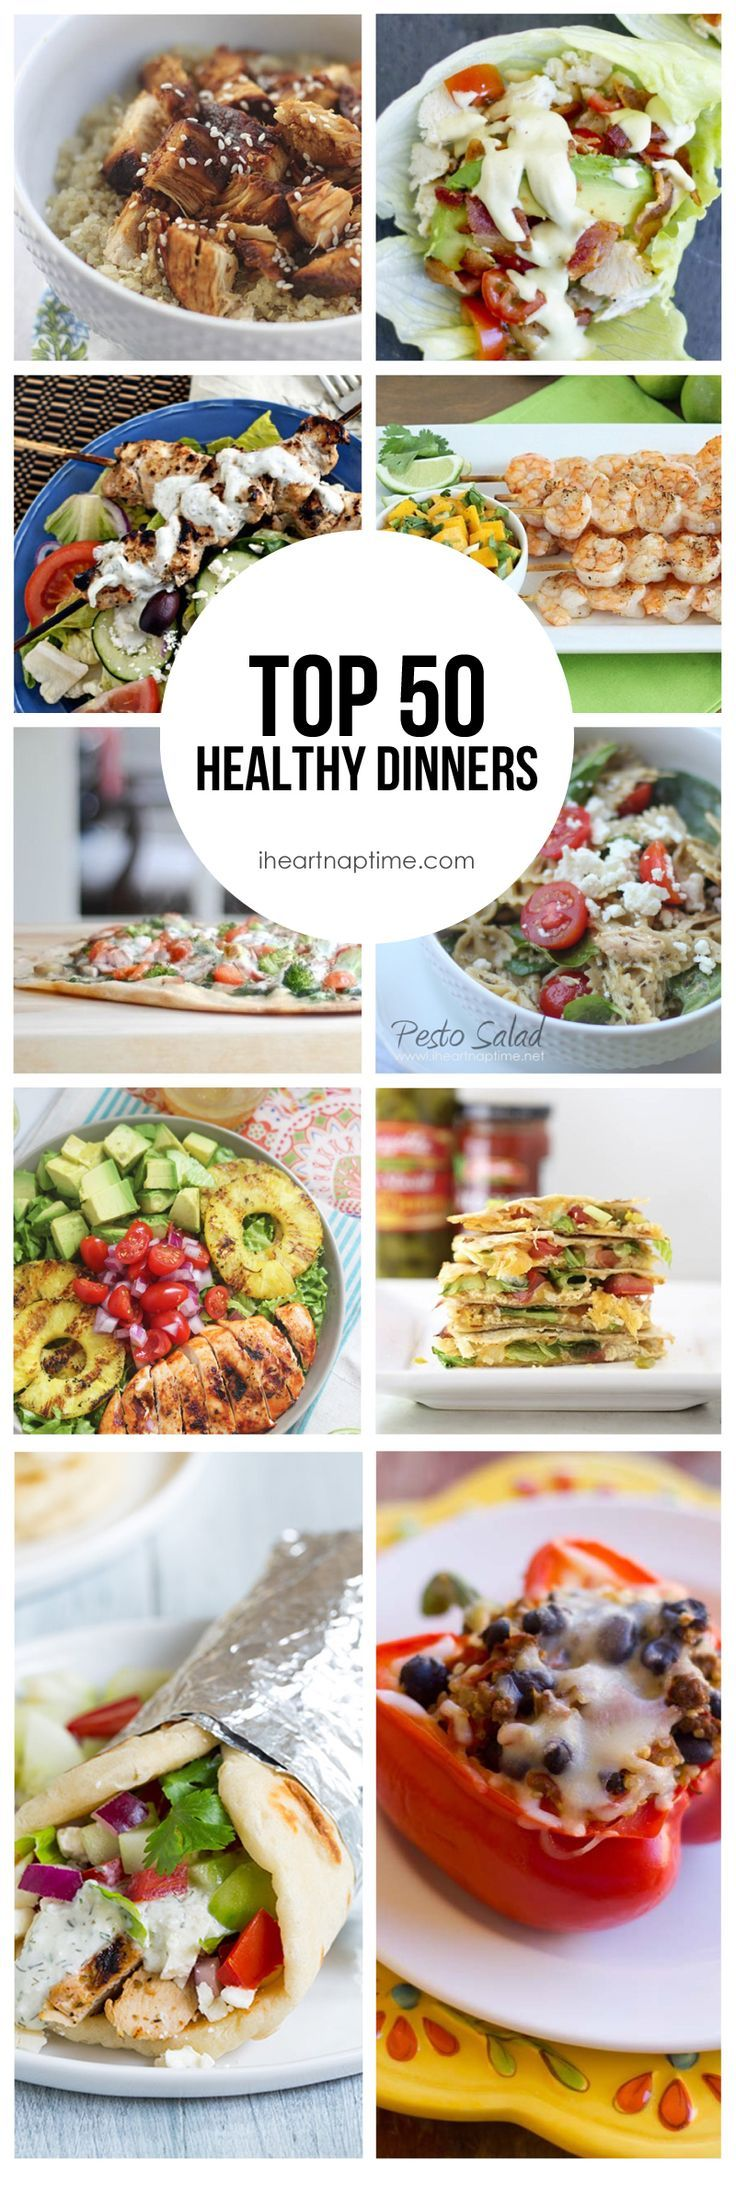 Best 25 Heart healthy recipes ideas on Pinterest Heart healthy